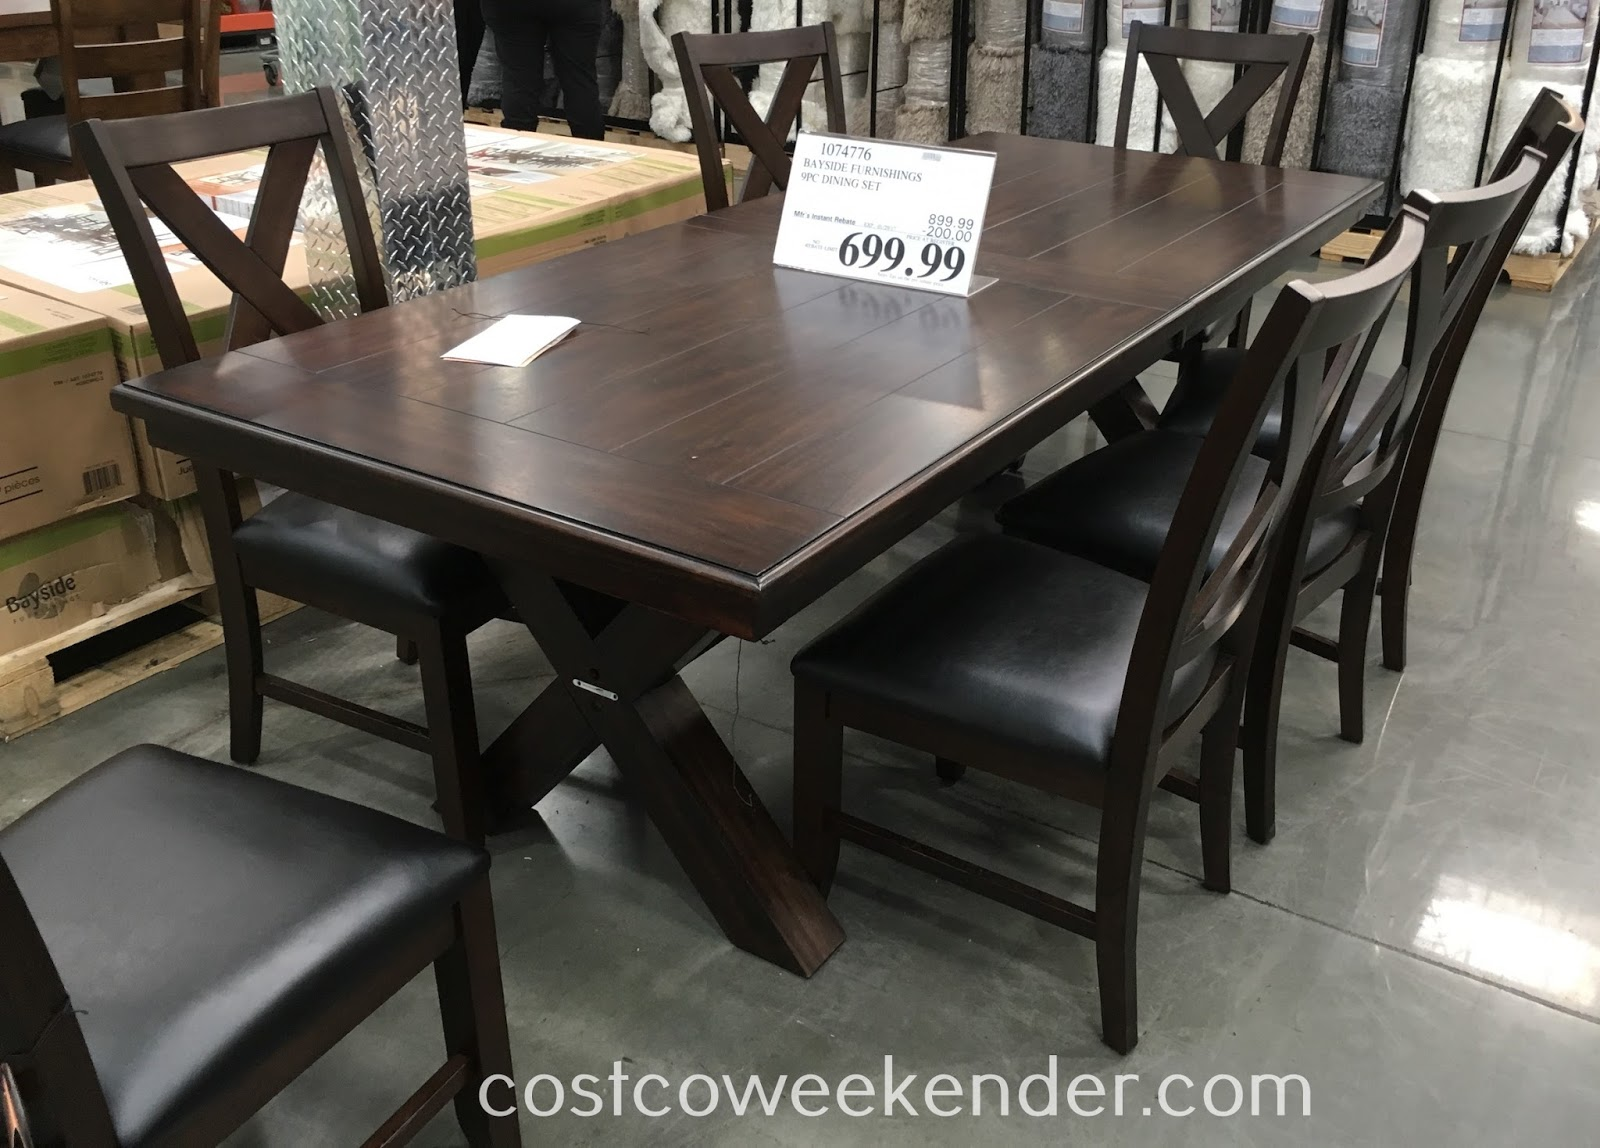 Costco Dining Set Bayside Furnishings 9 Piece Dining Set Costco Weekender